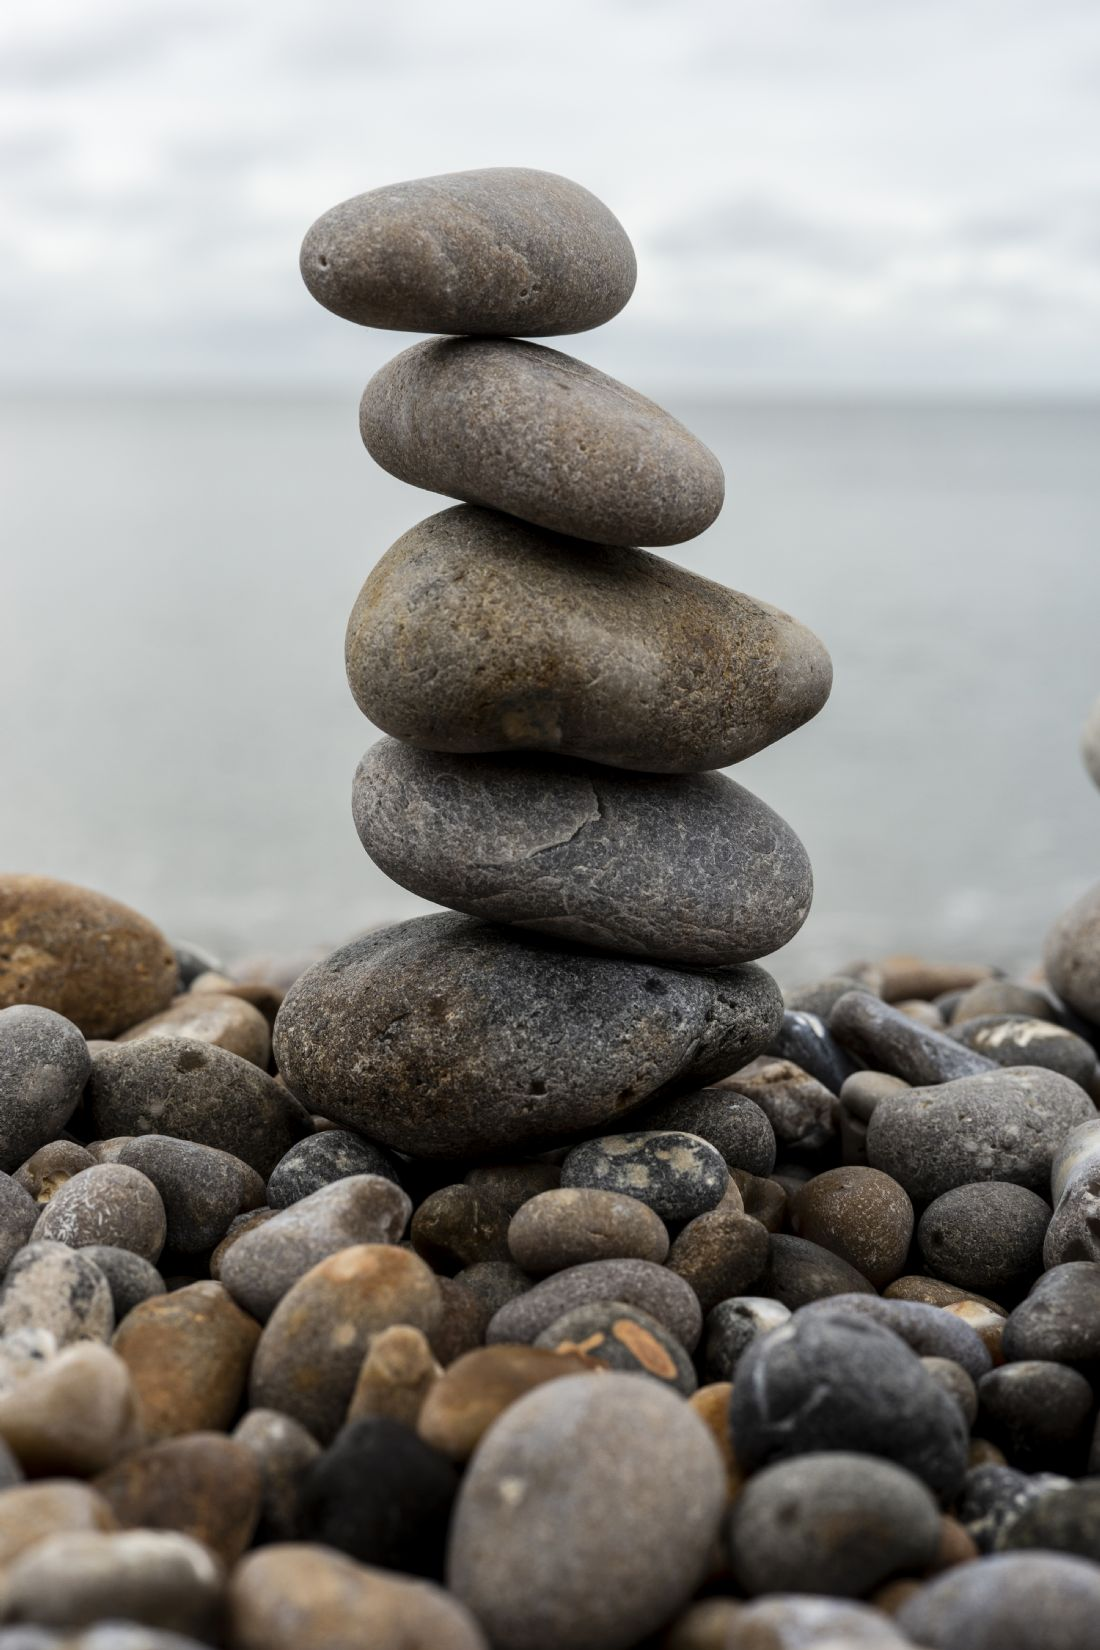 anthony hart | A photogrpahy of a stack of pebbles on the beach in Seaton Devon